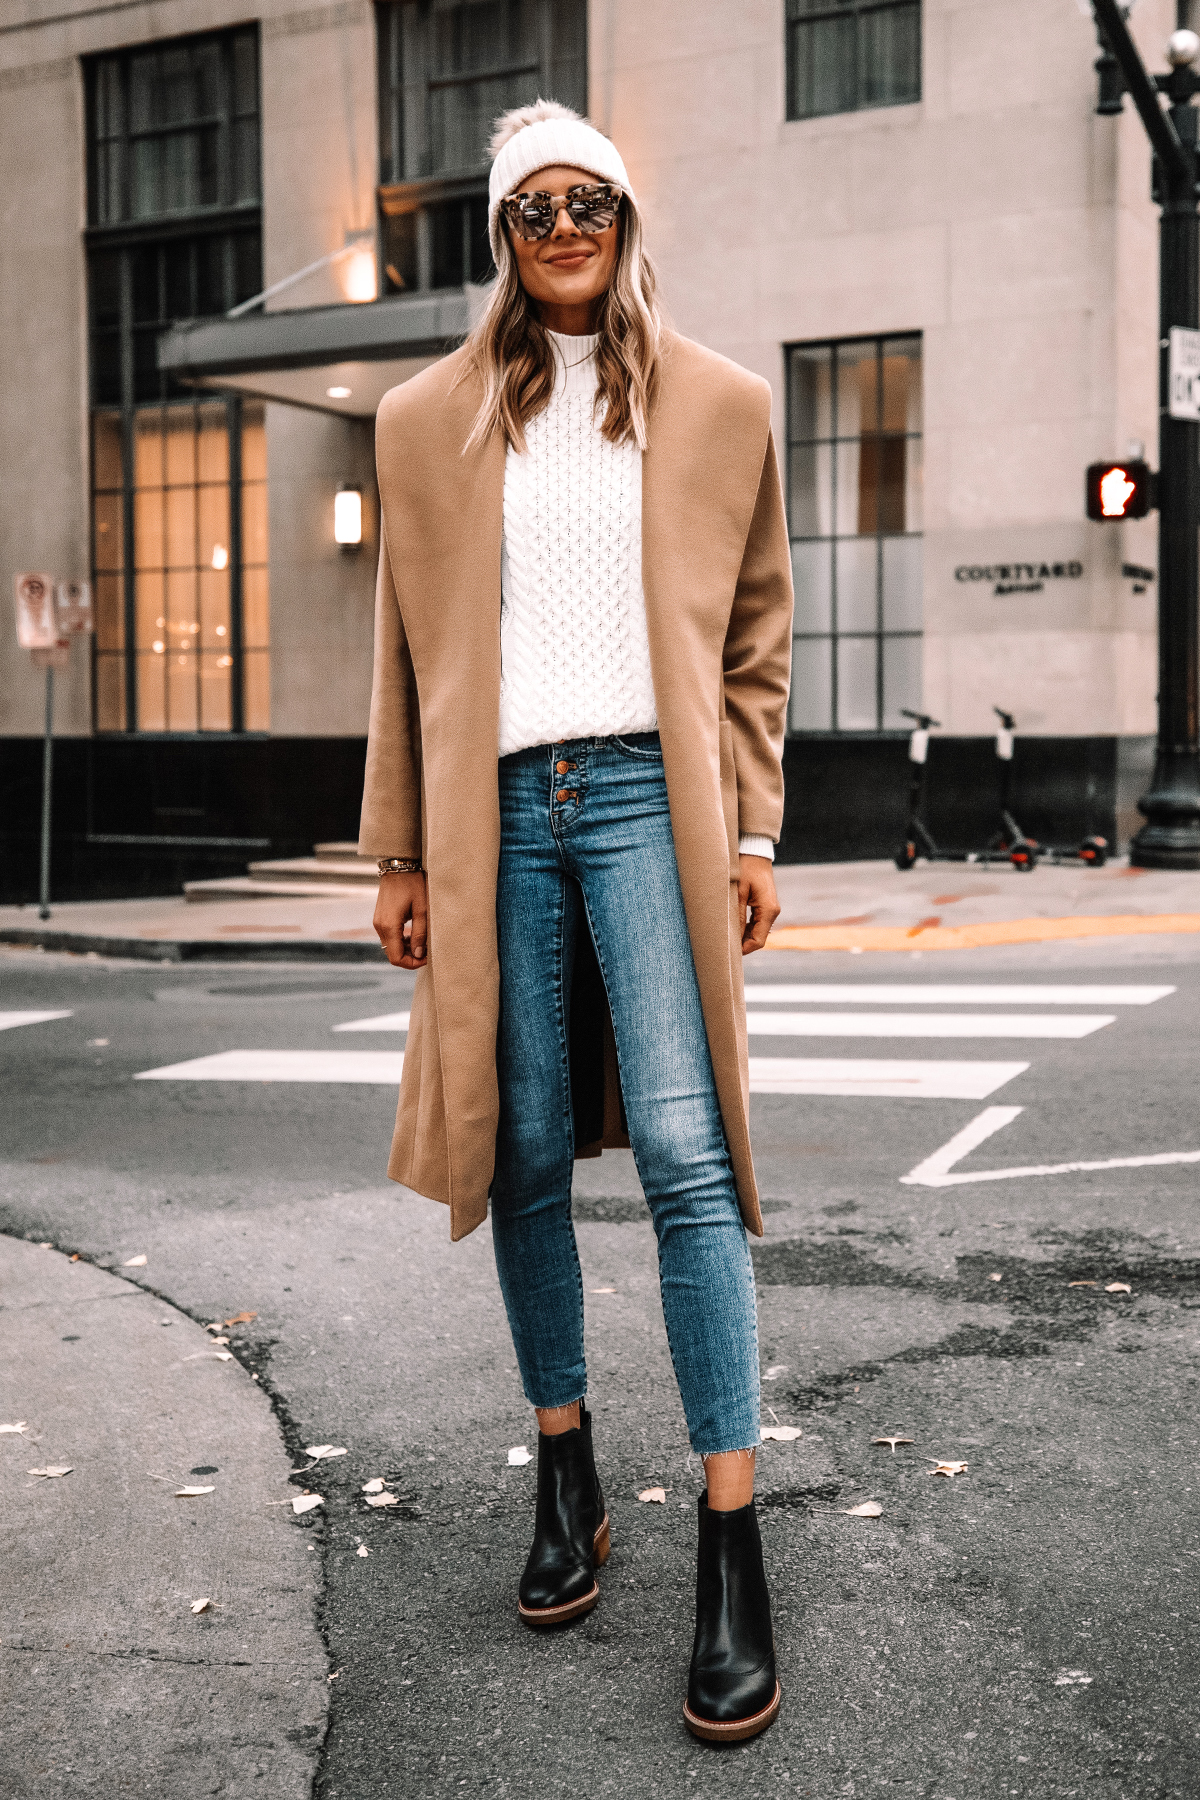 Fashion Jackson Wearing Jcrew Camel Wrap Coat White Swetaer Raw Hem Jeans Black Lug Sole Boots White Beanie Winter Outfit Street Style 2